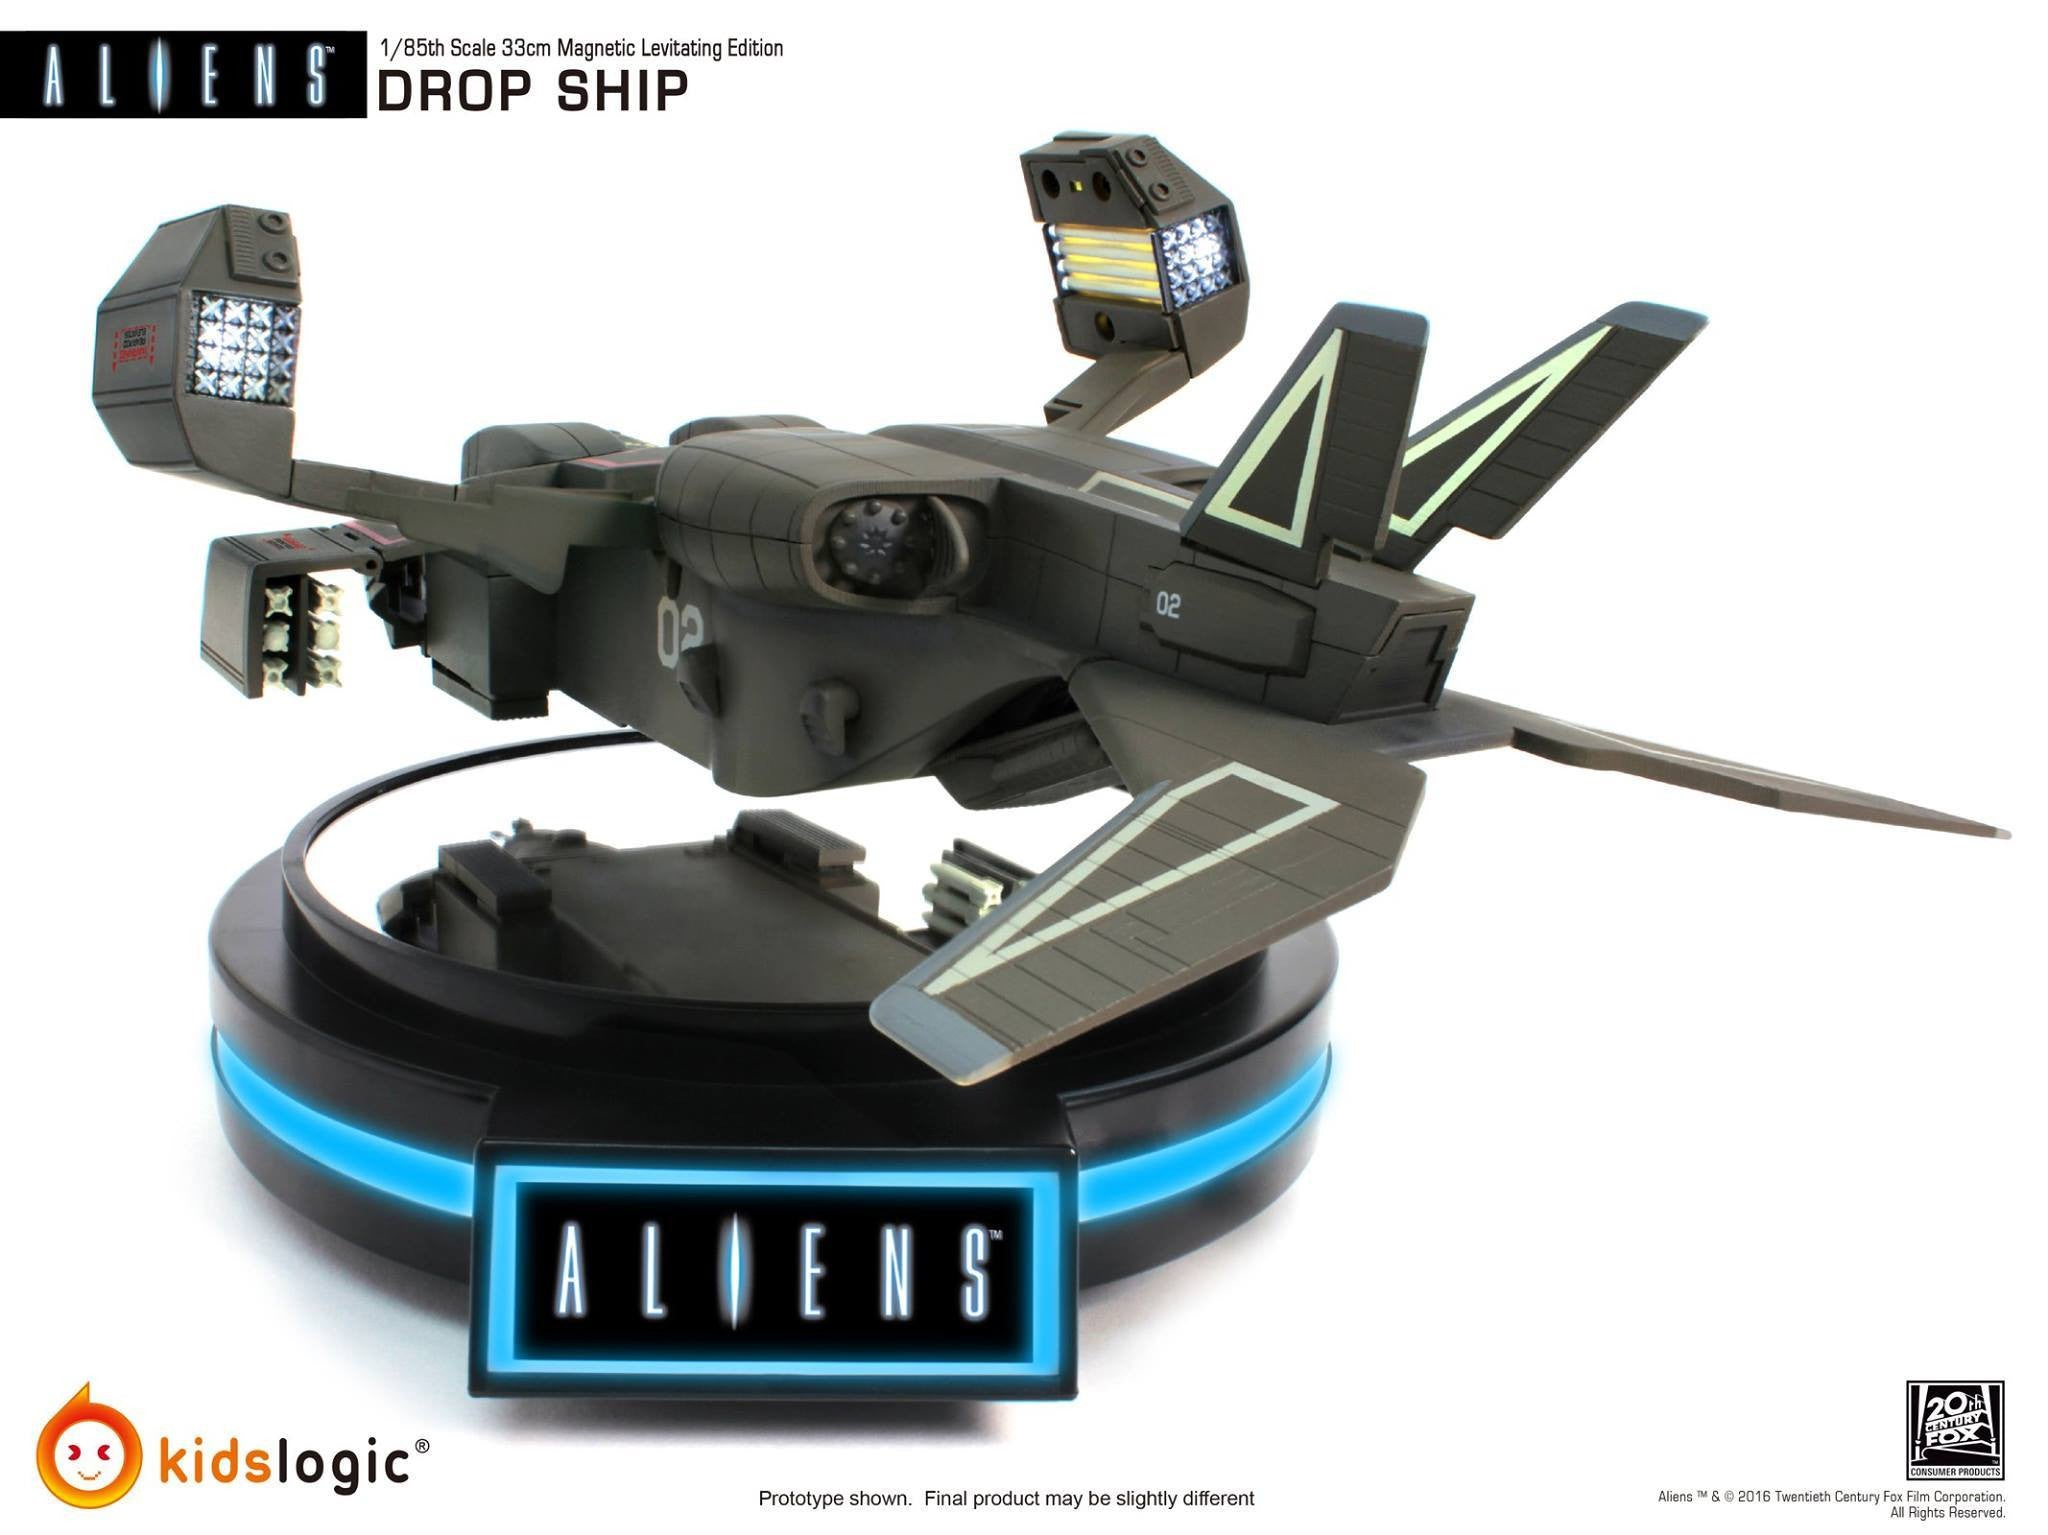 Kids Logic - ML-04 - Aliens - 1/85 Magnetic Levitating Drop Ship - Marvelous Toys - 5